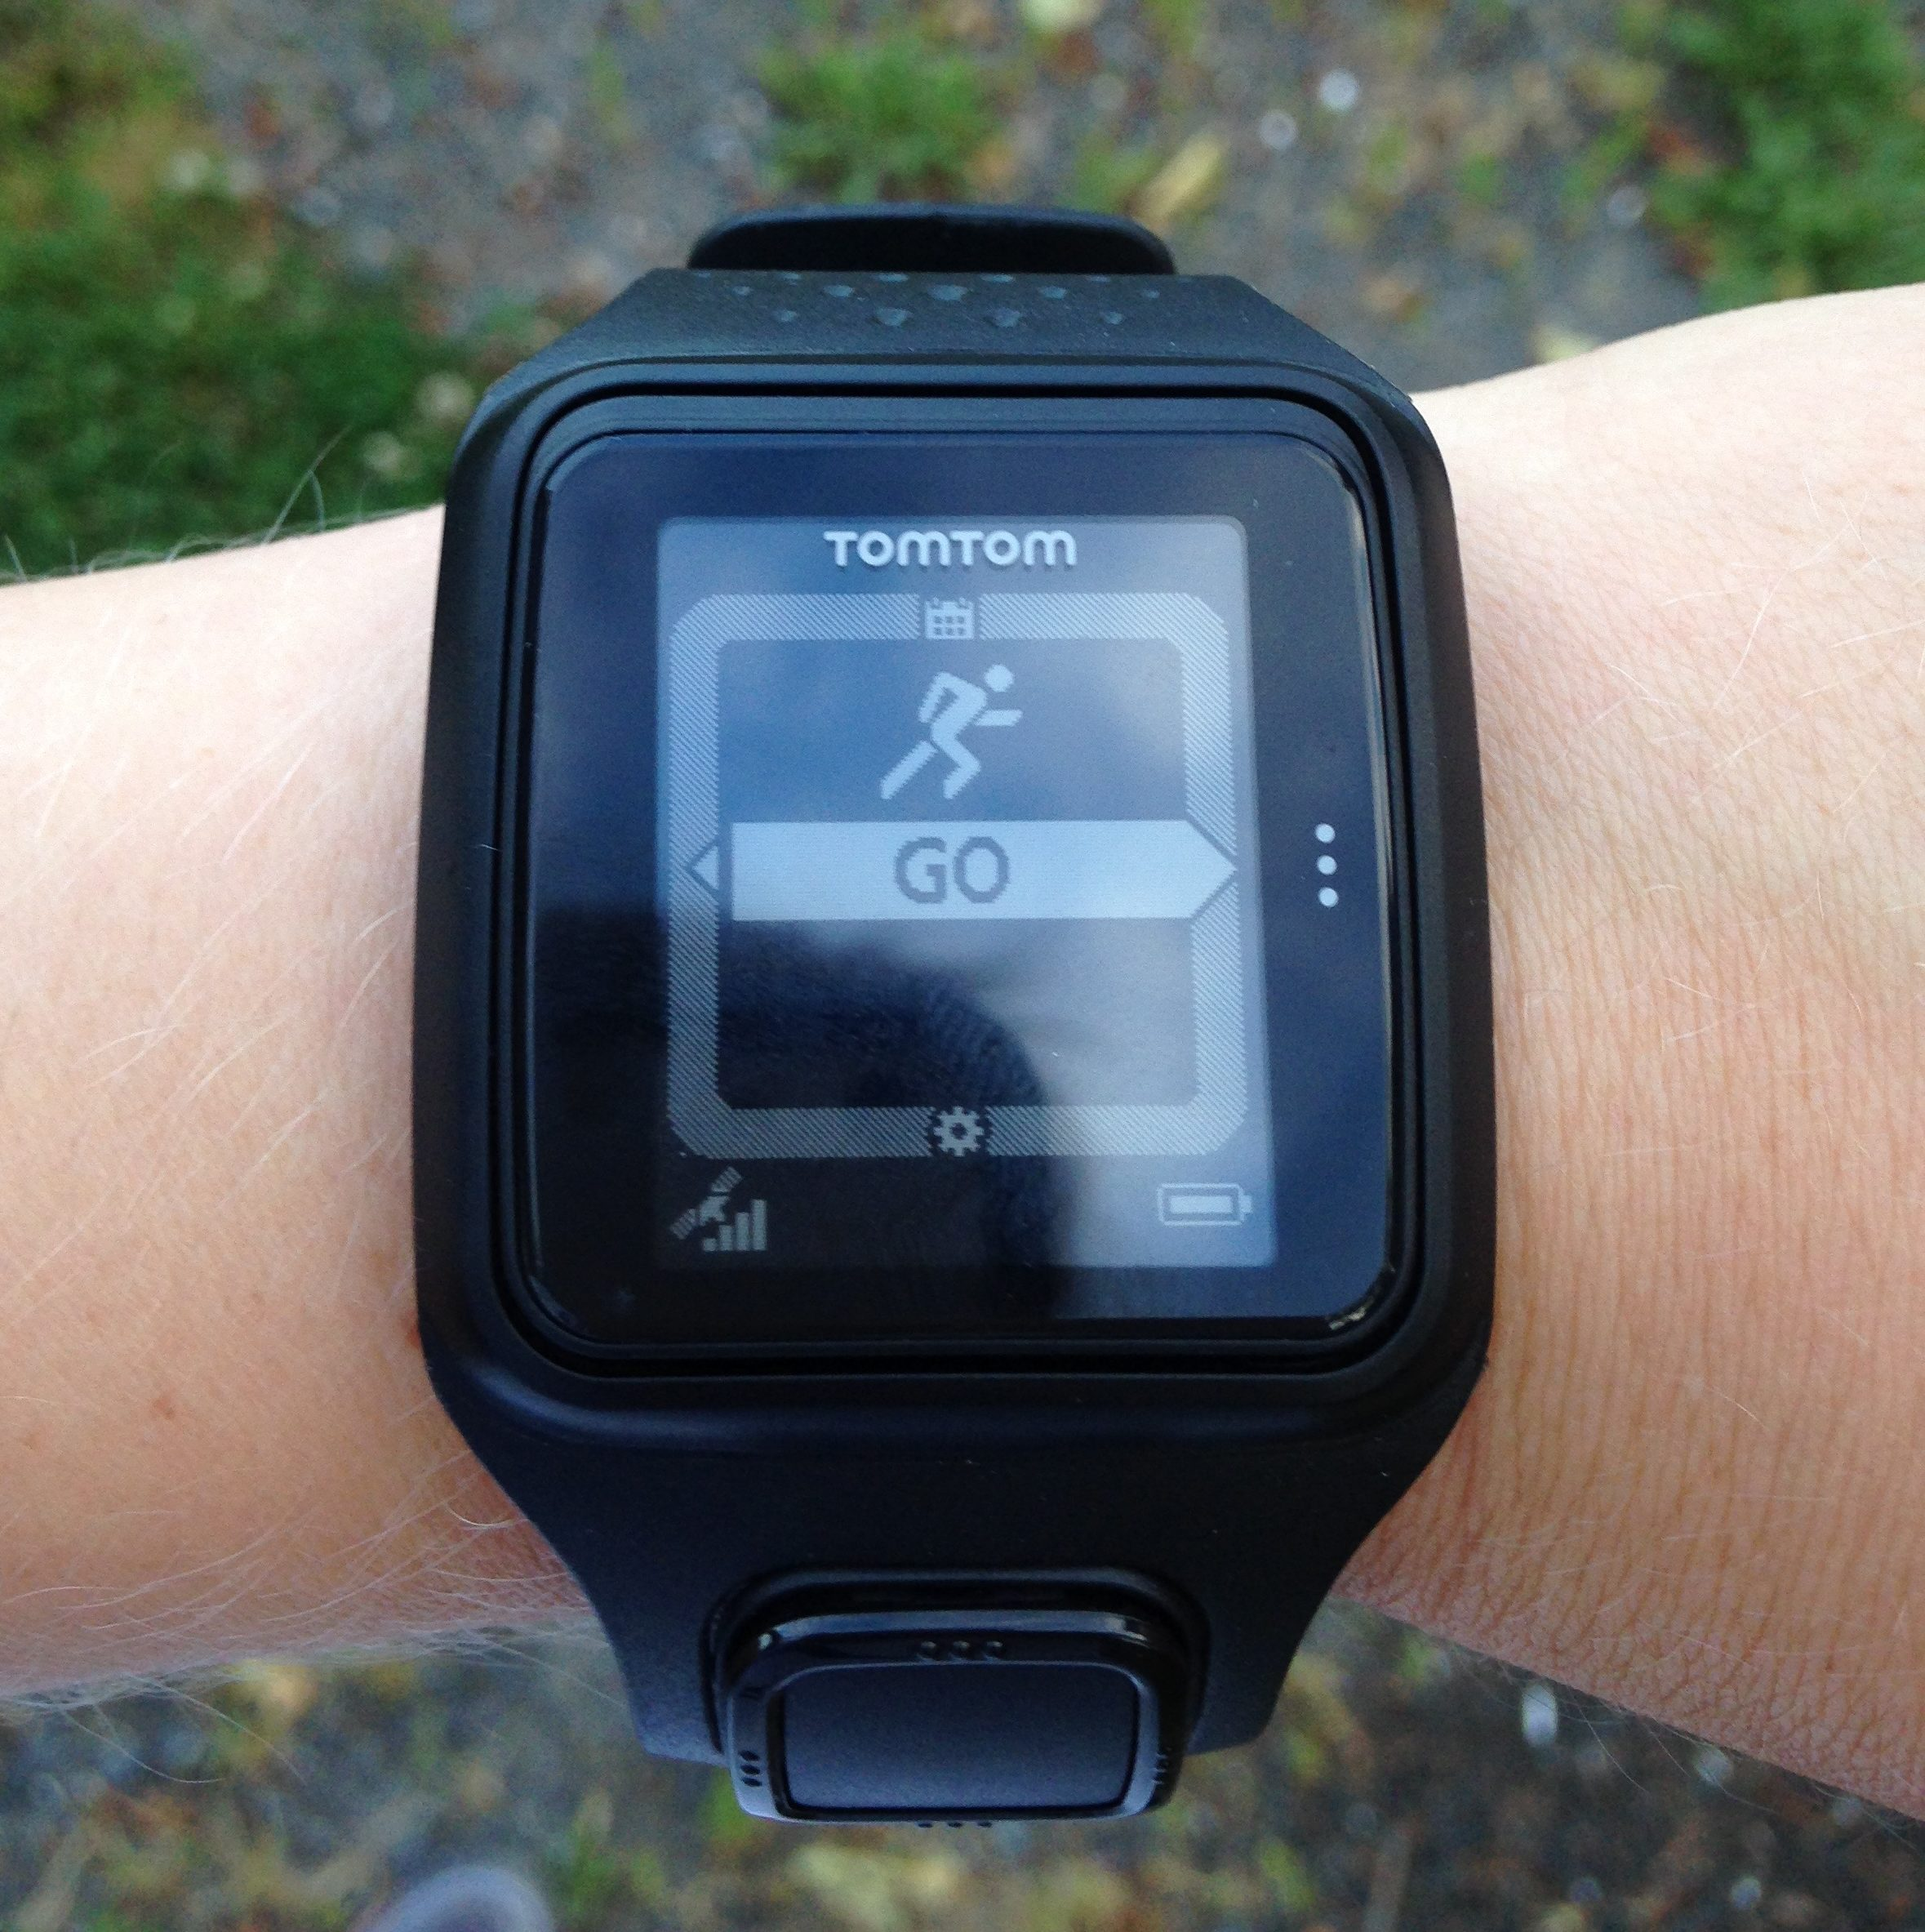 Review of TomTom Runner GPS Watch 4